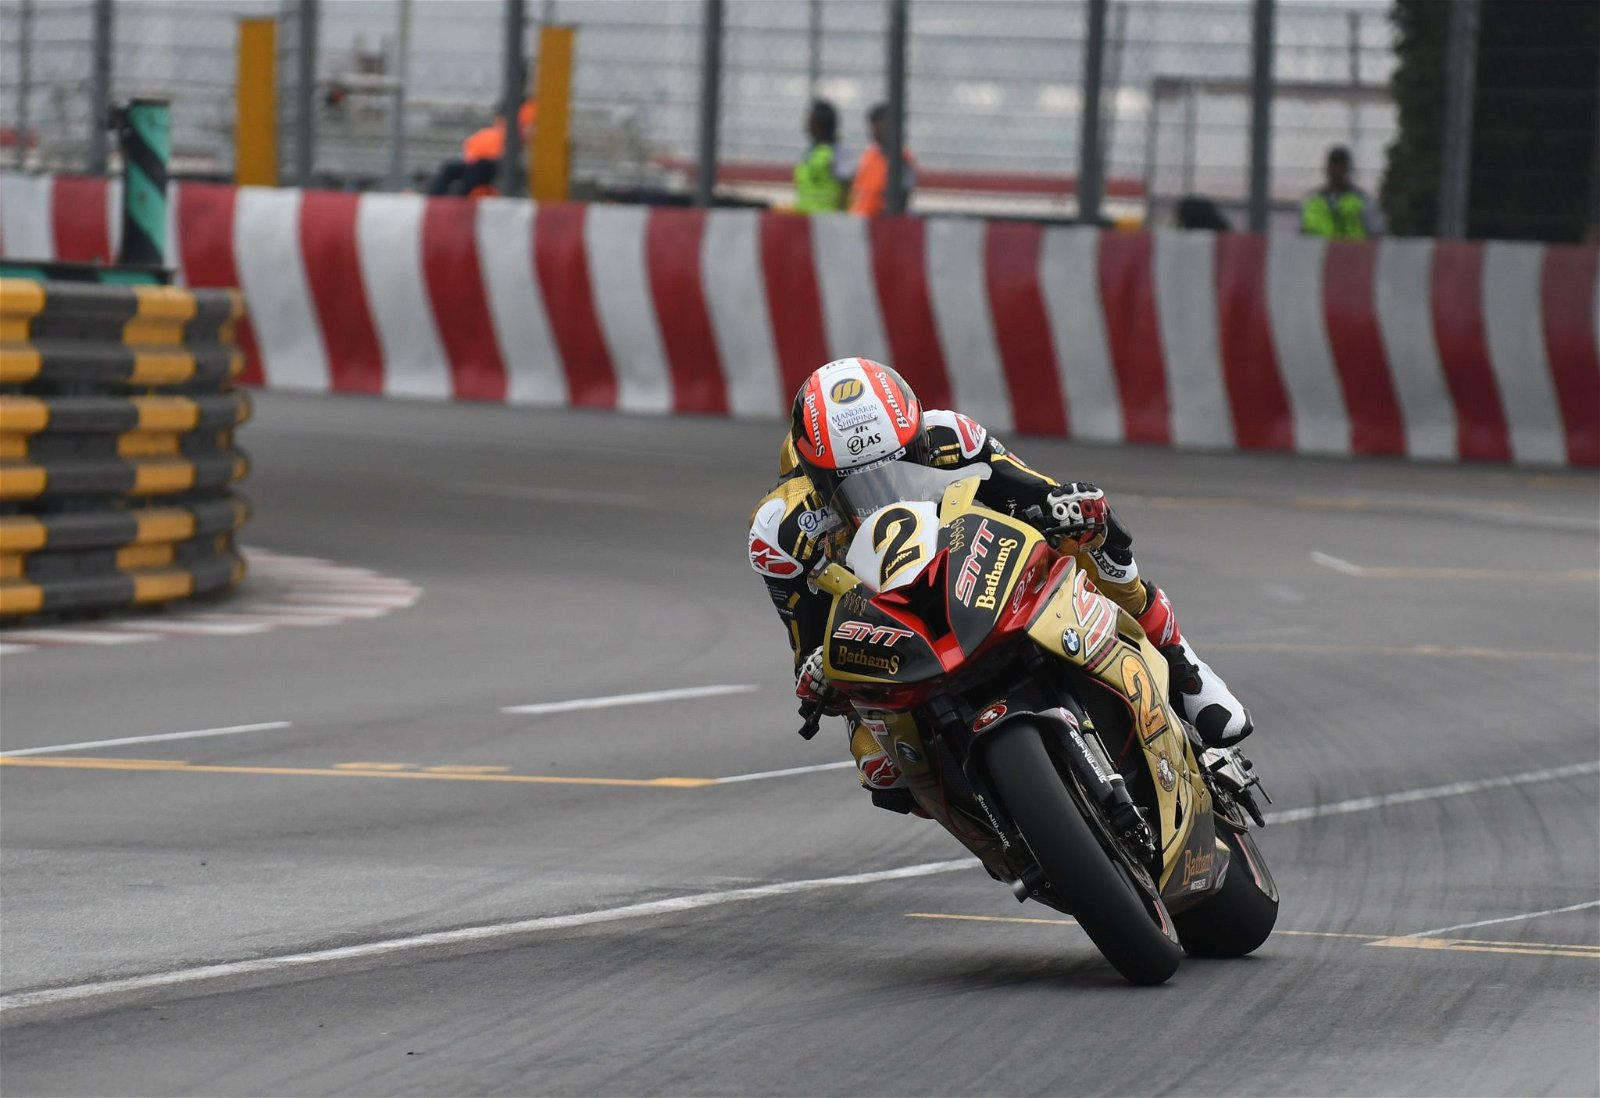 Rutter aims to get the better of Hickman credit Pacemaker Press International.